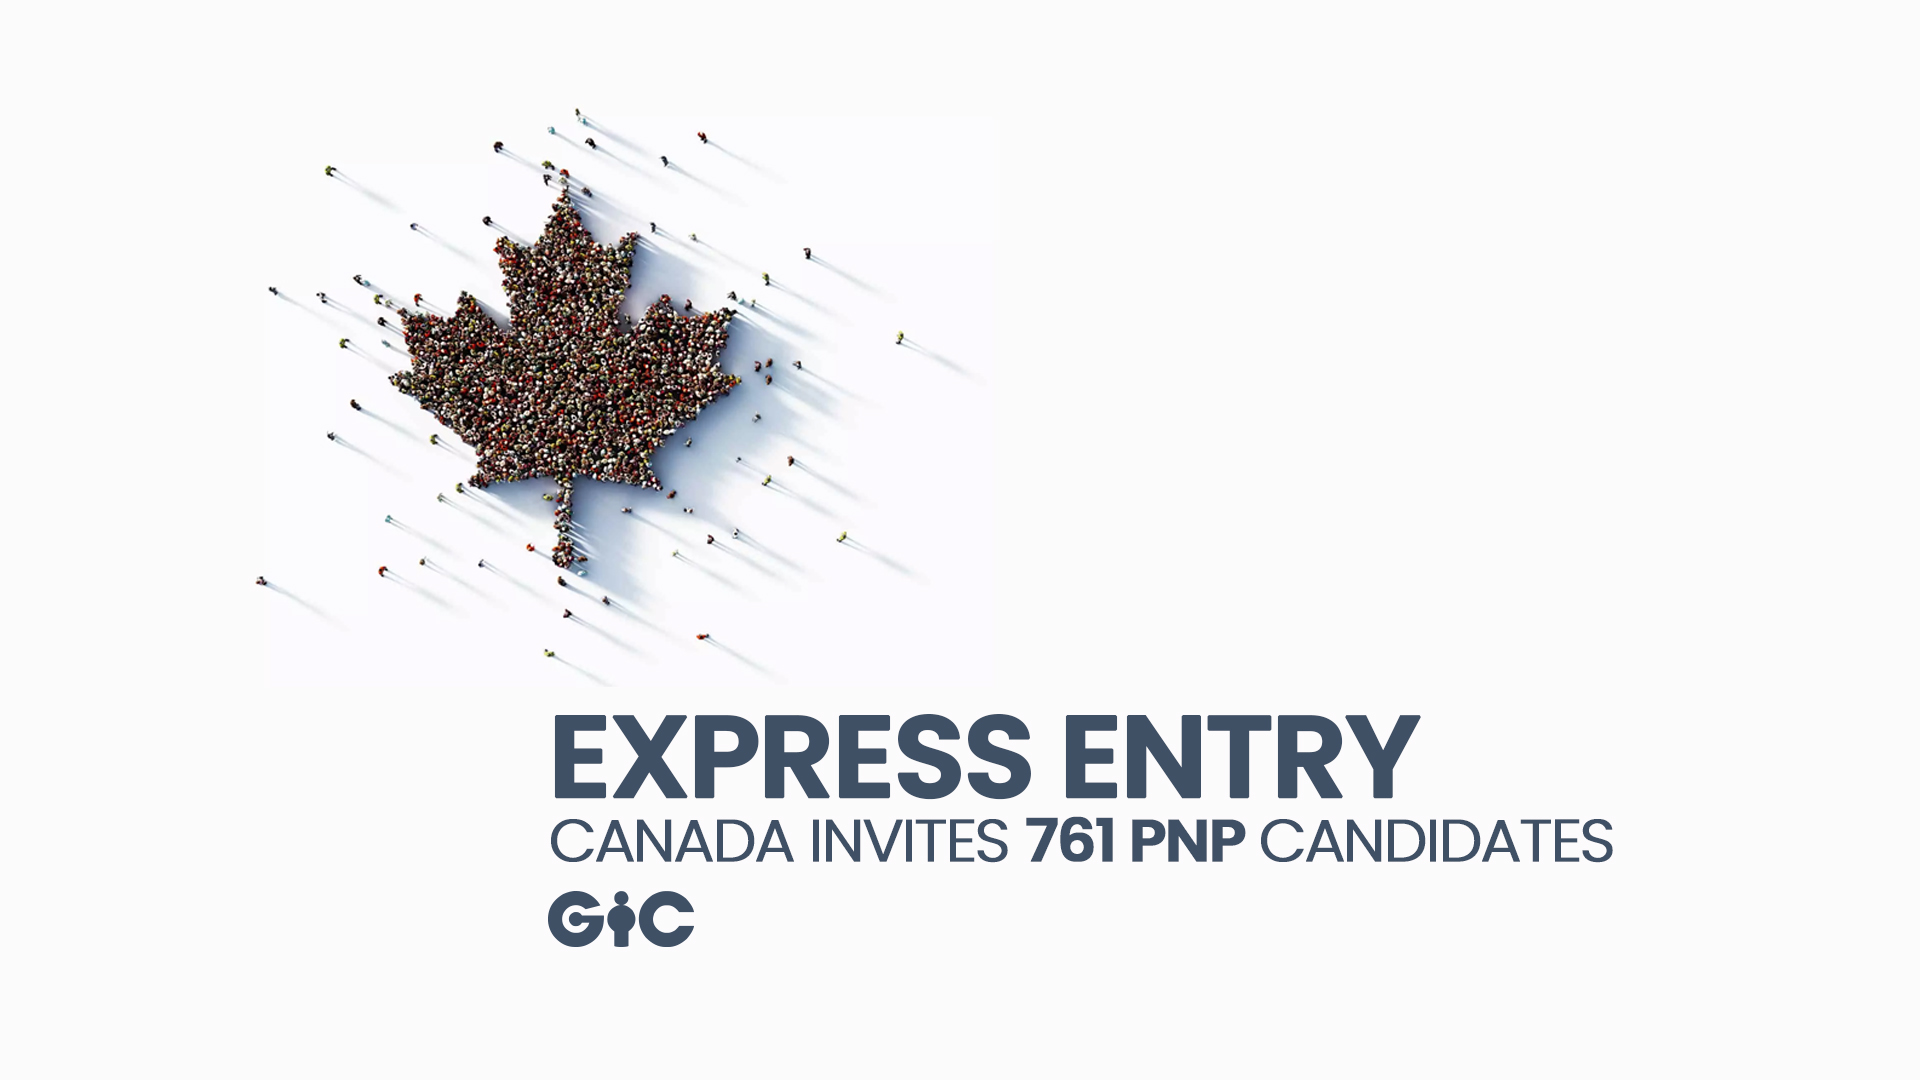 Express Entry Canada invites 761 PNP candidates